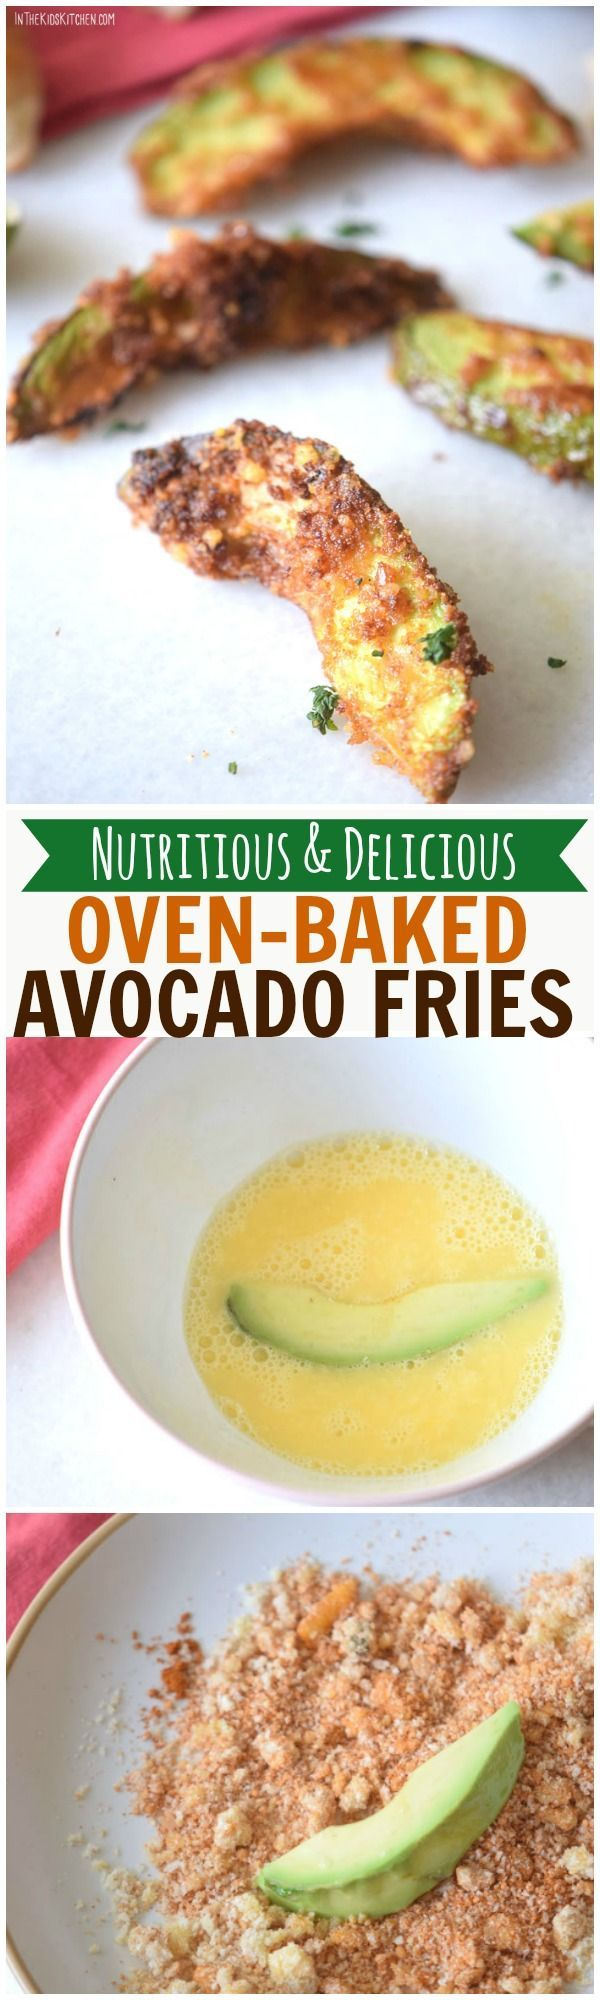 A nutritious (and delicious) alternative to greasy french fries, these Baked Avocado Fries are packed with vitamins and fiber. Plus they're easy to make!